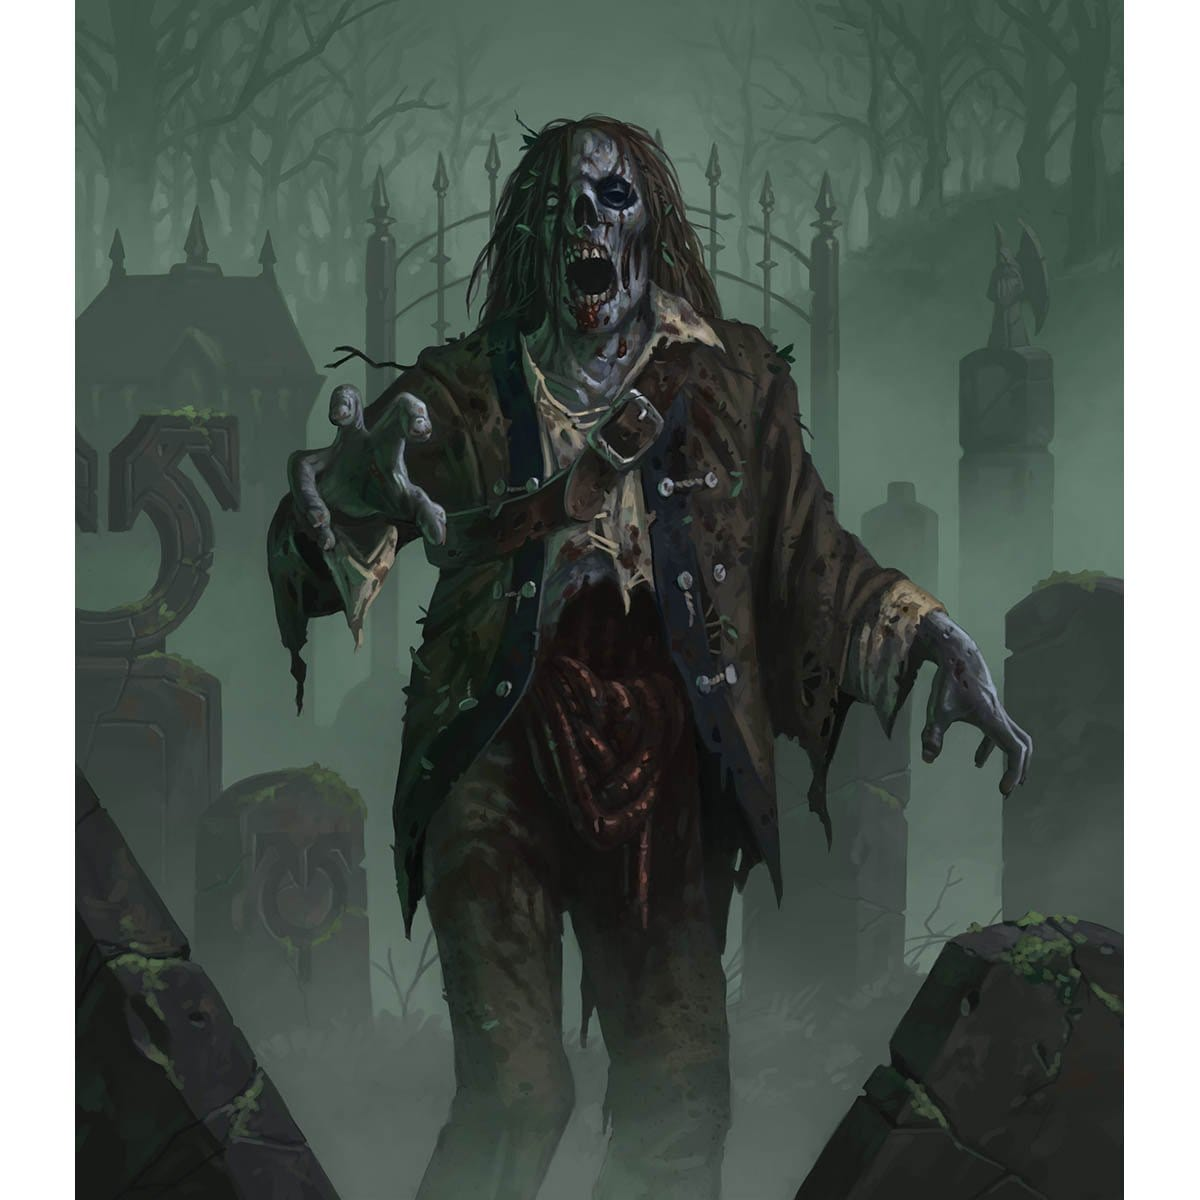 Zombie Token Print - Print - Original Magic Art - Accessories for Magic the Gathering and other card games